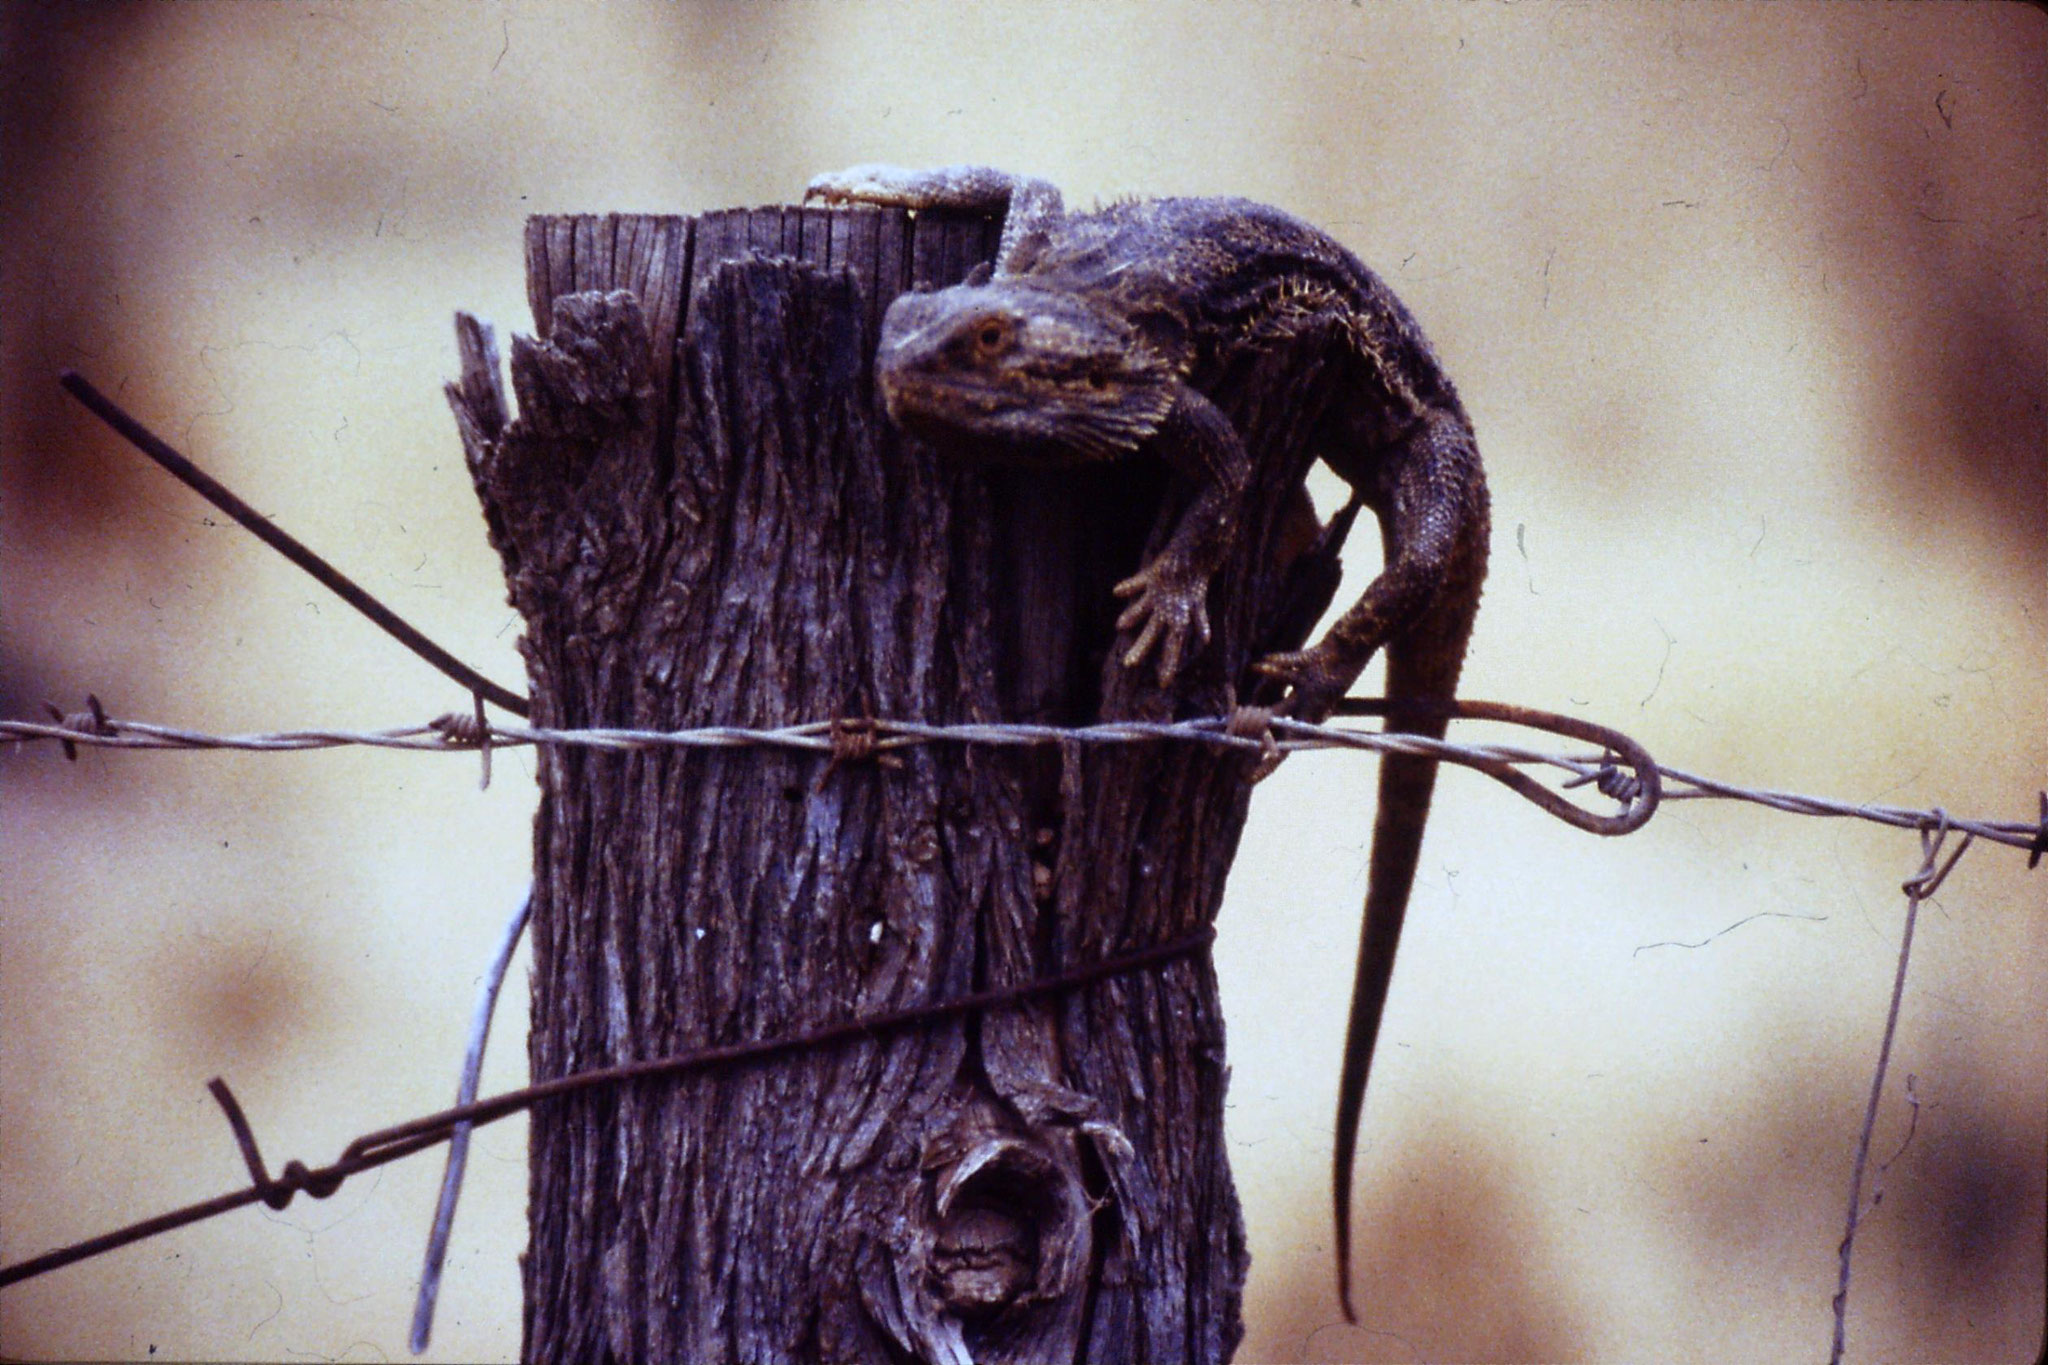 7/11/1990: 33: Lizard on fence post